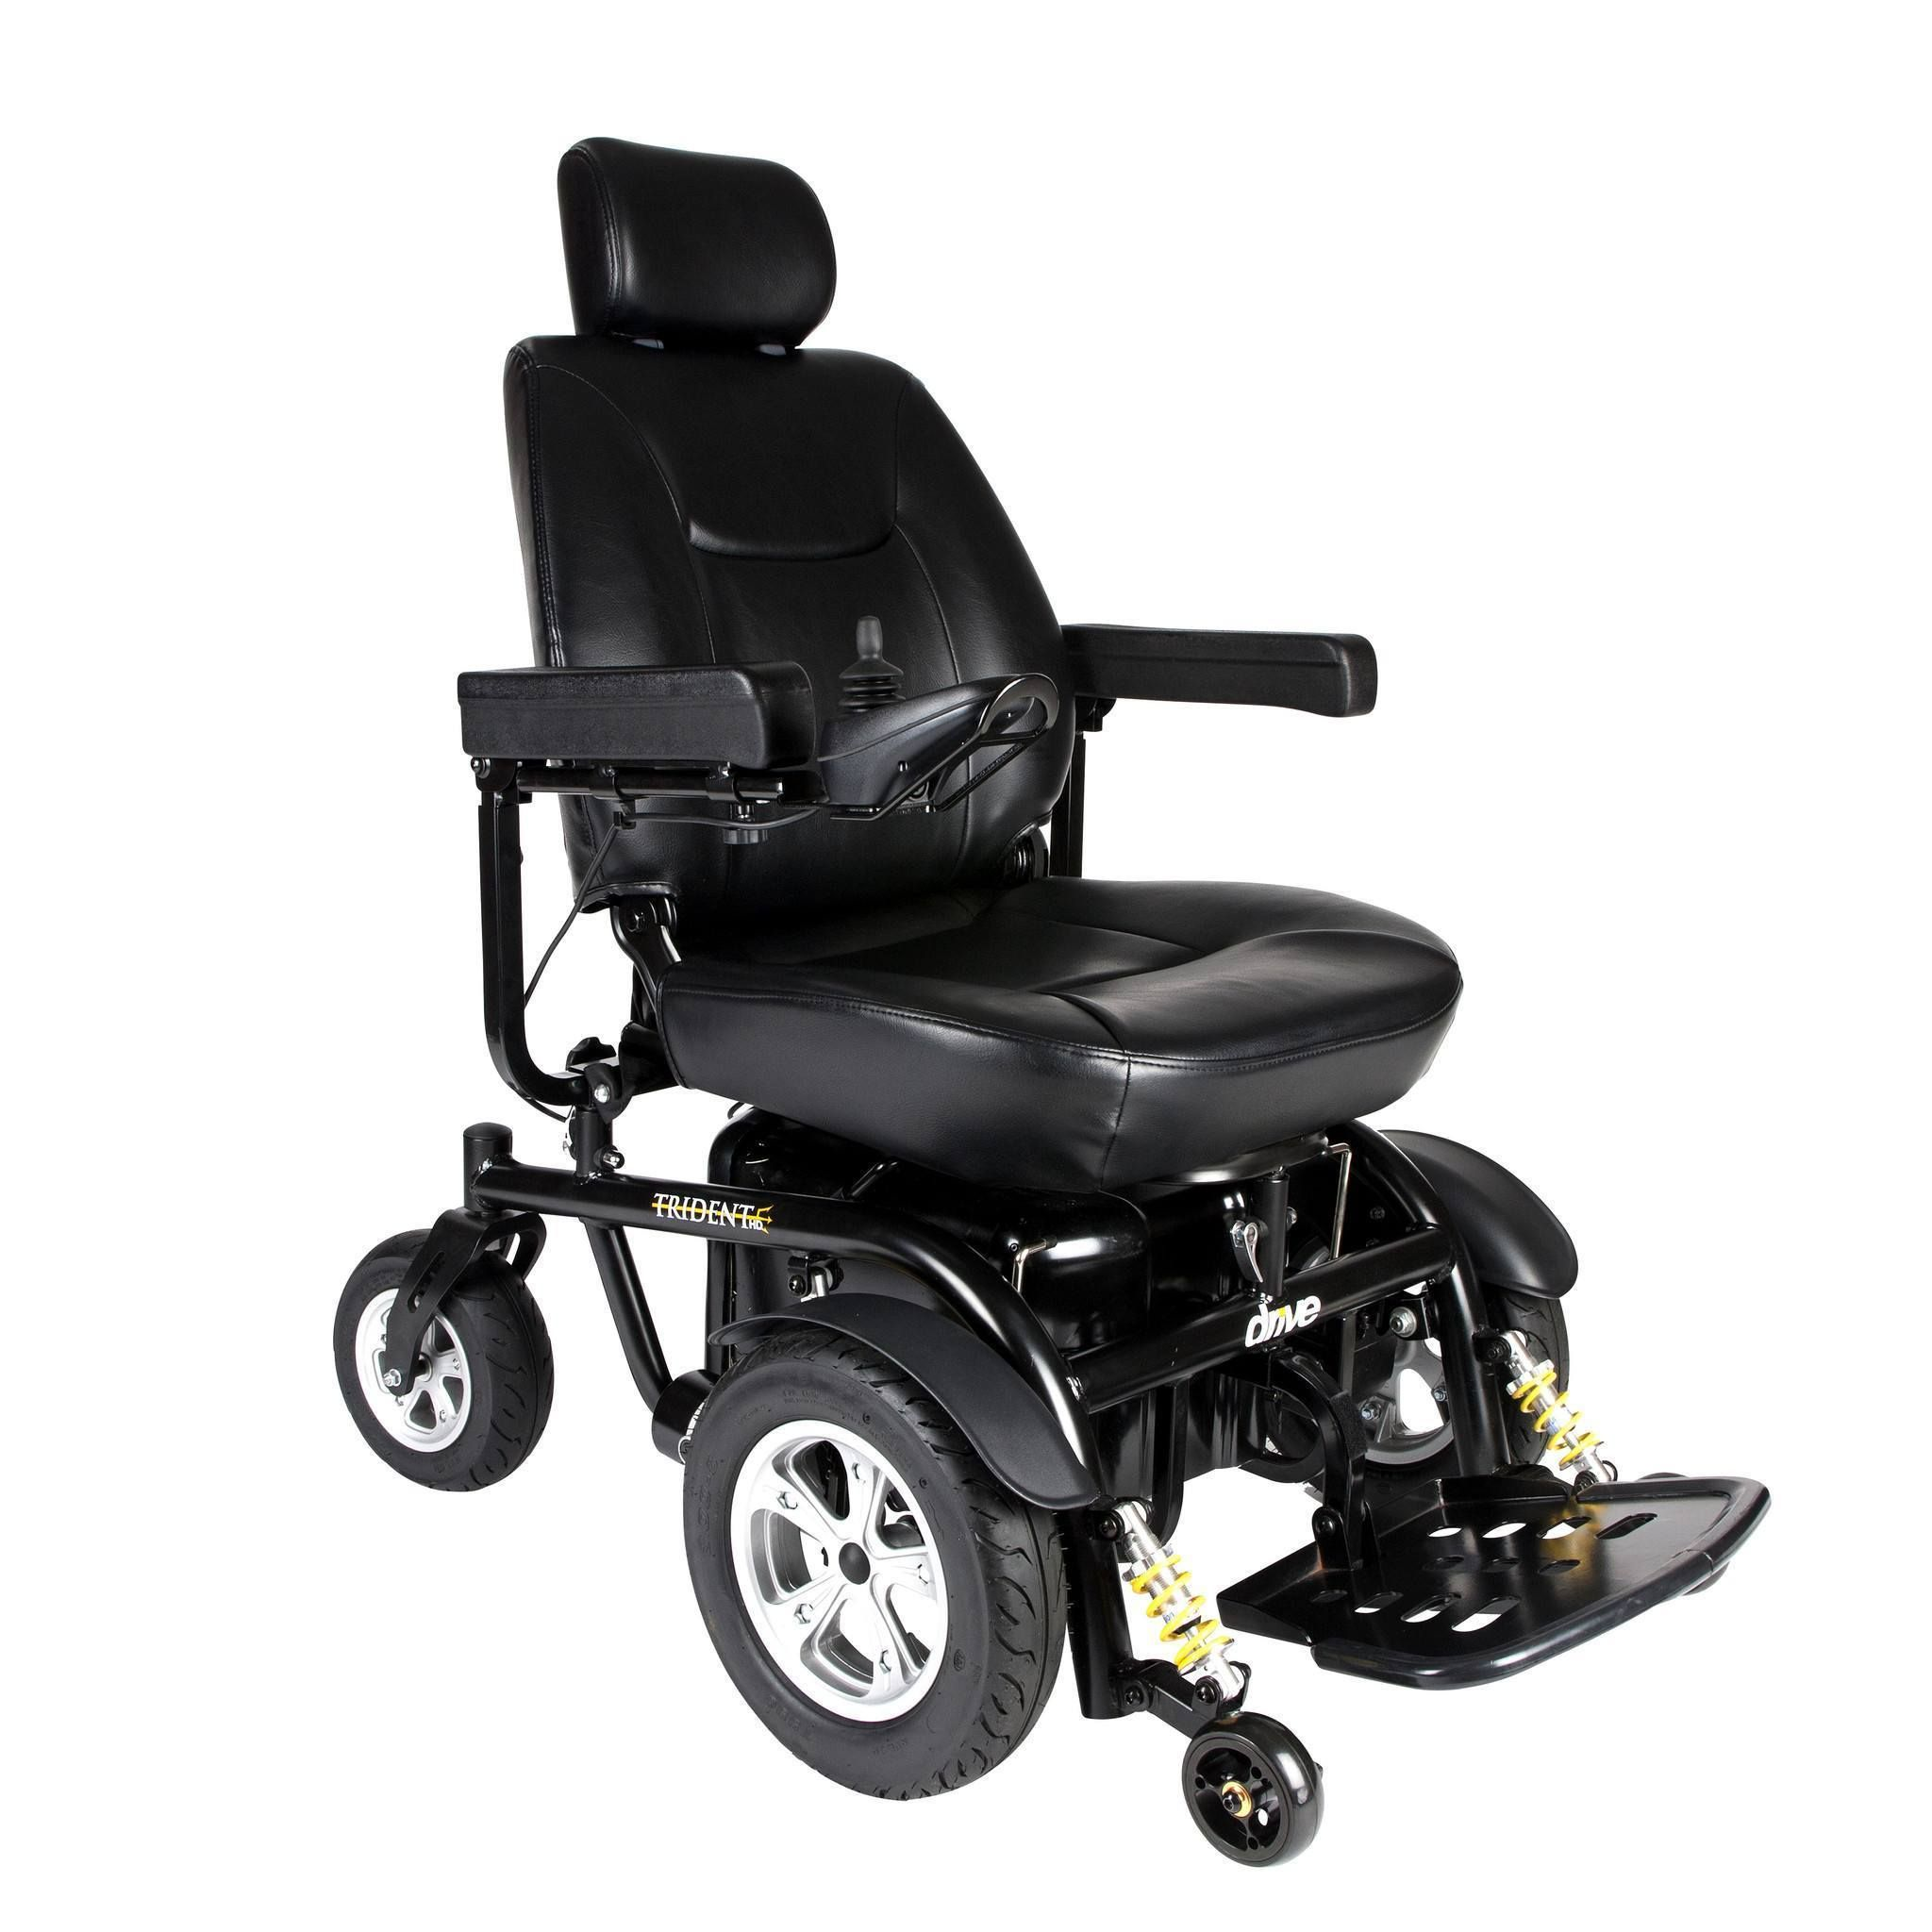 Trident Hd Heavy Duty Power Chair With 24 Seat The Trident Hd Front Wheel Drive Powerchair Offers Style Powered Wheelchair Power Mobility Electric Wheelchair